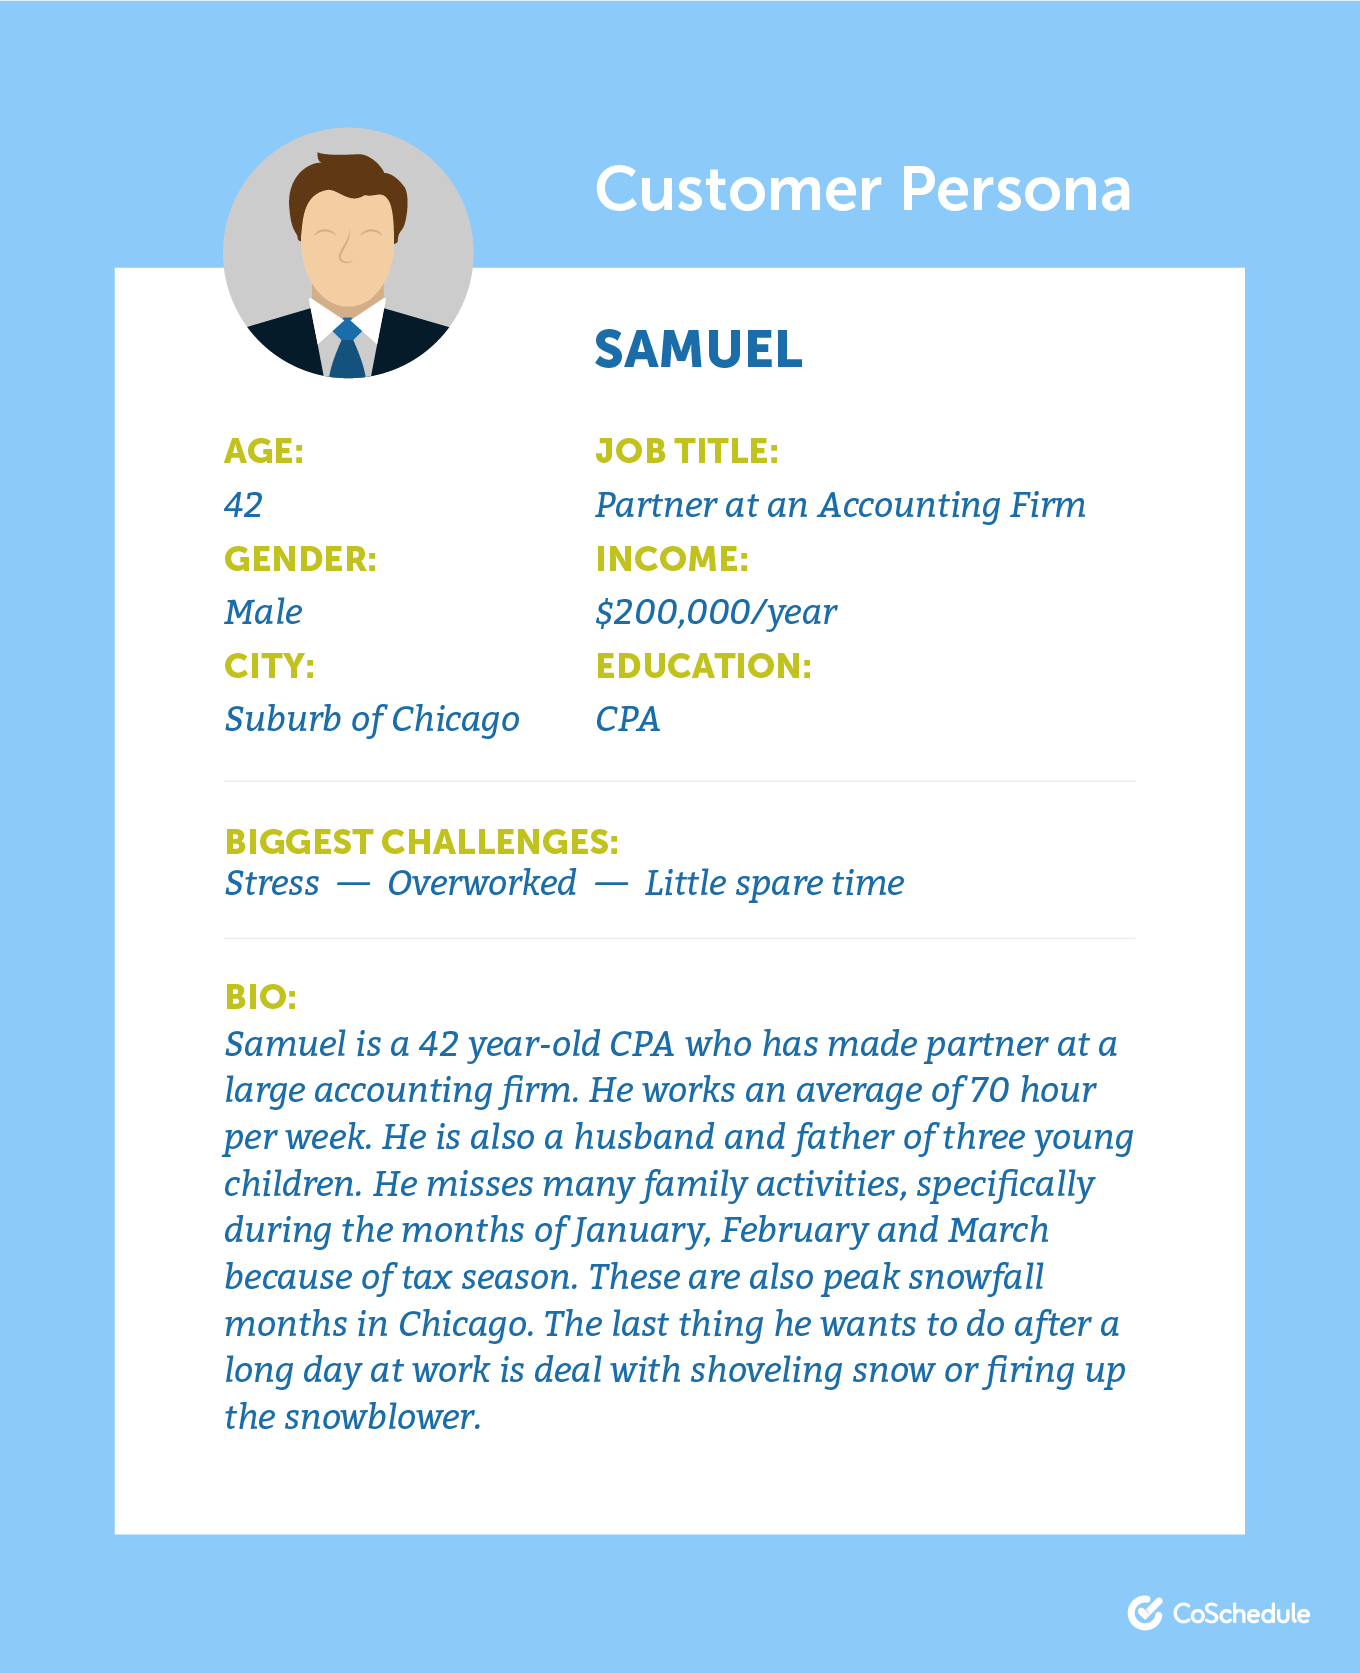 Customer persona graphic for Samuel